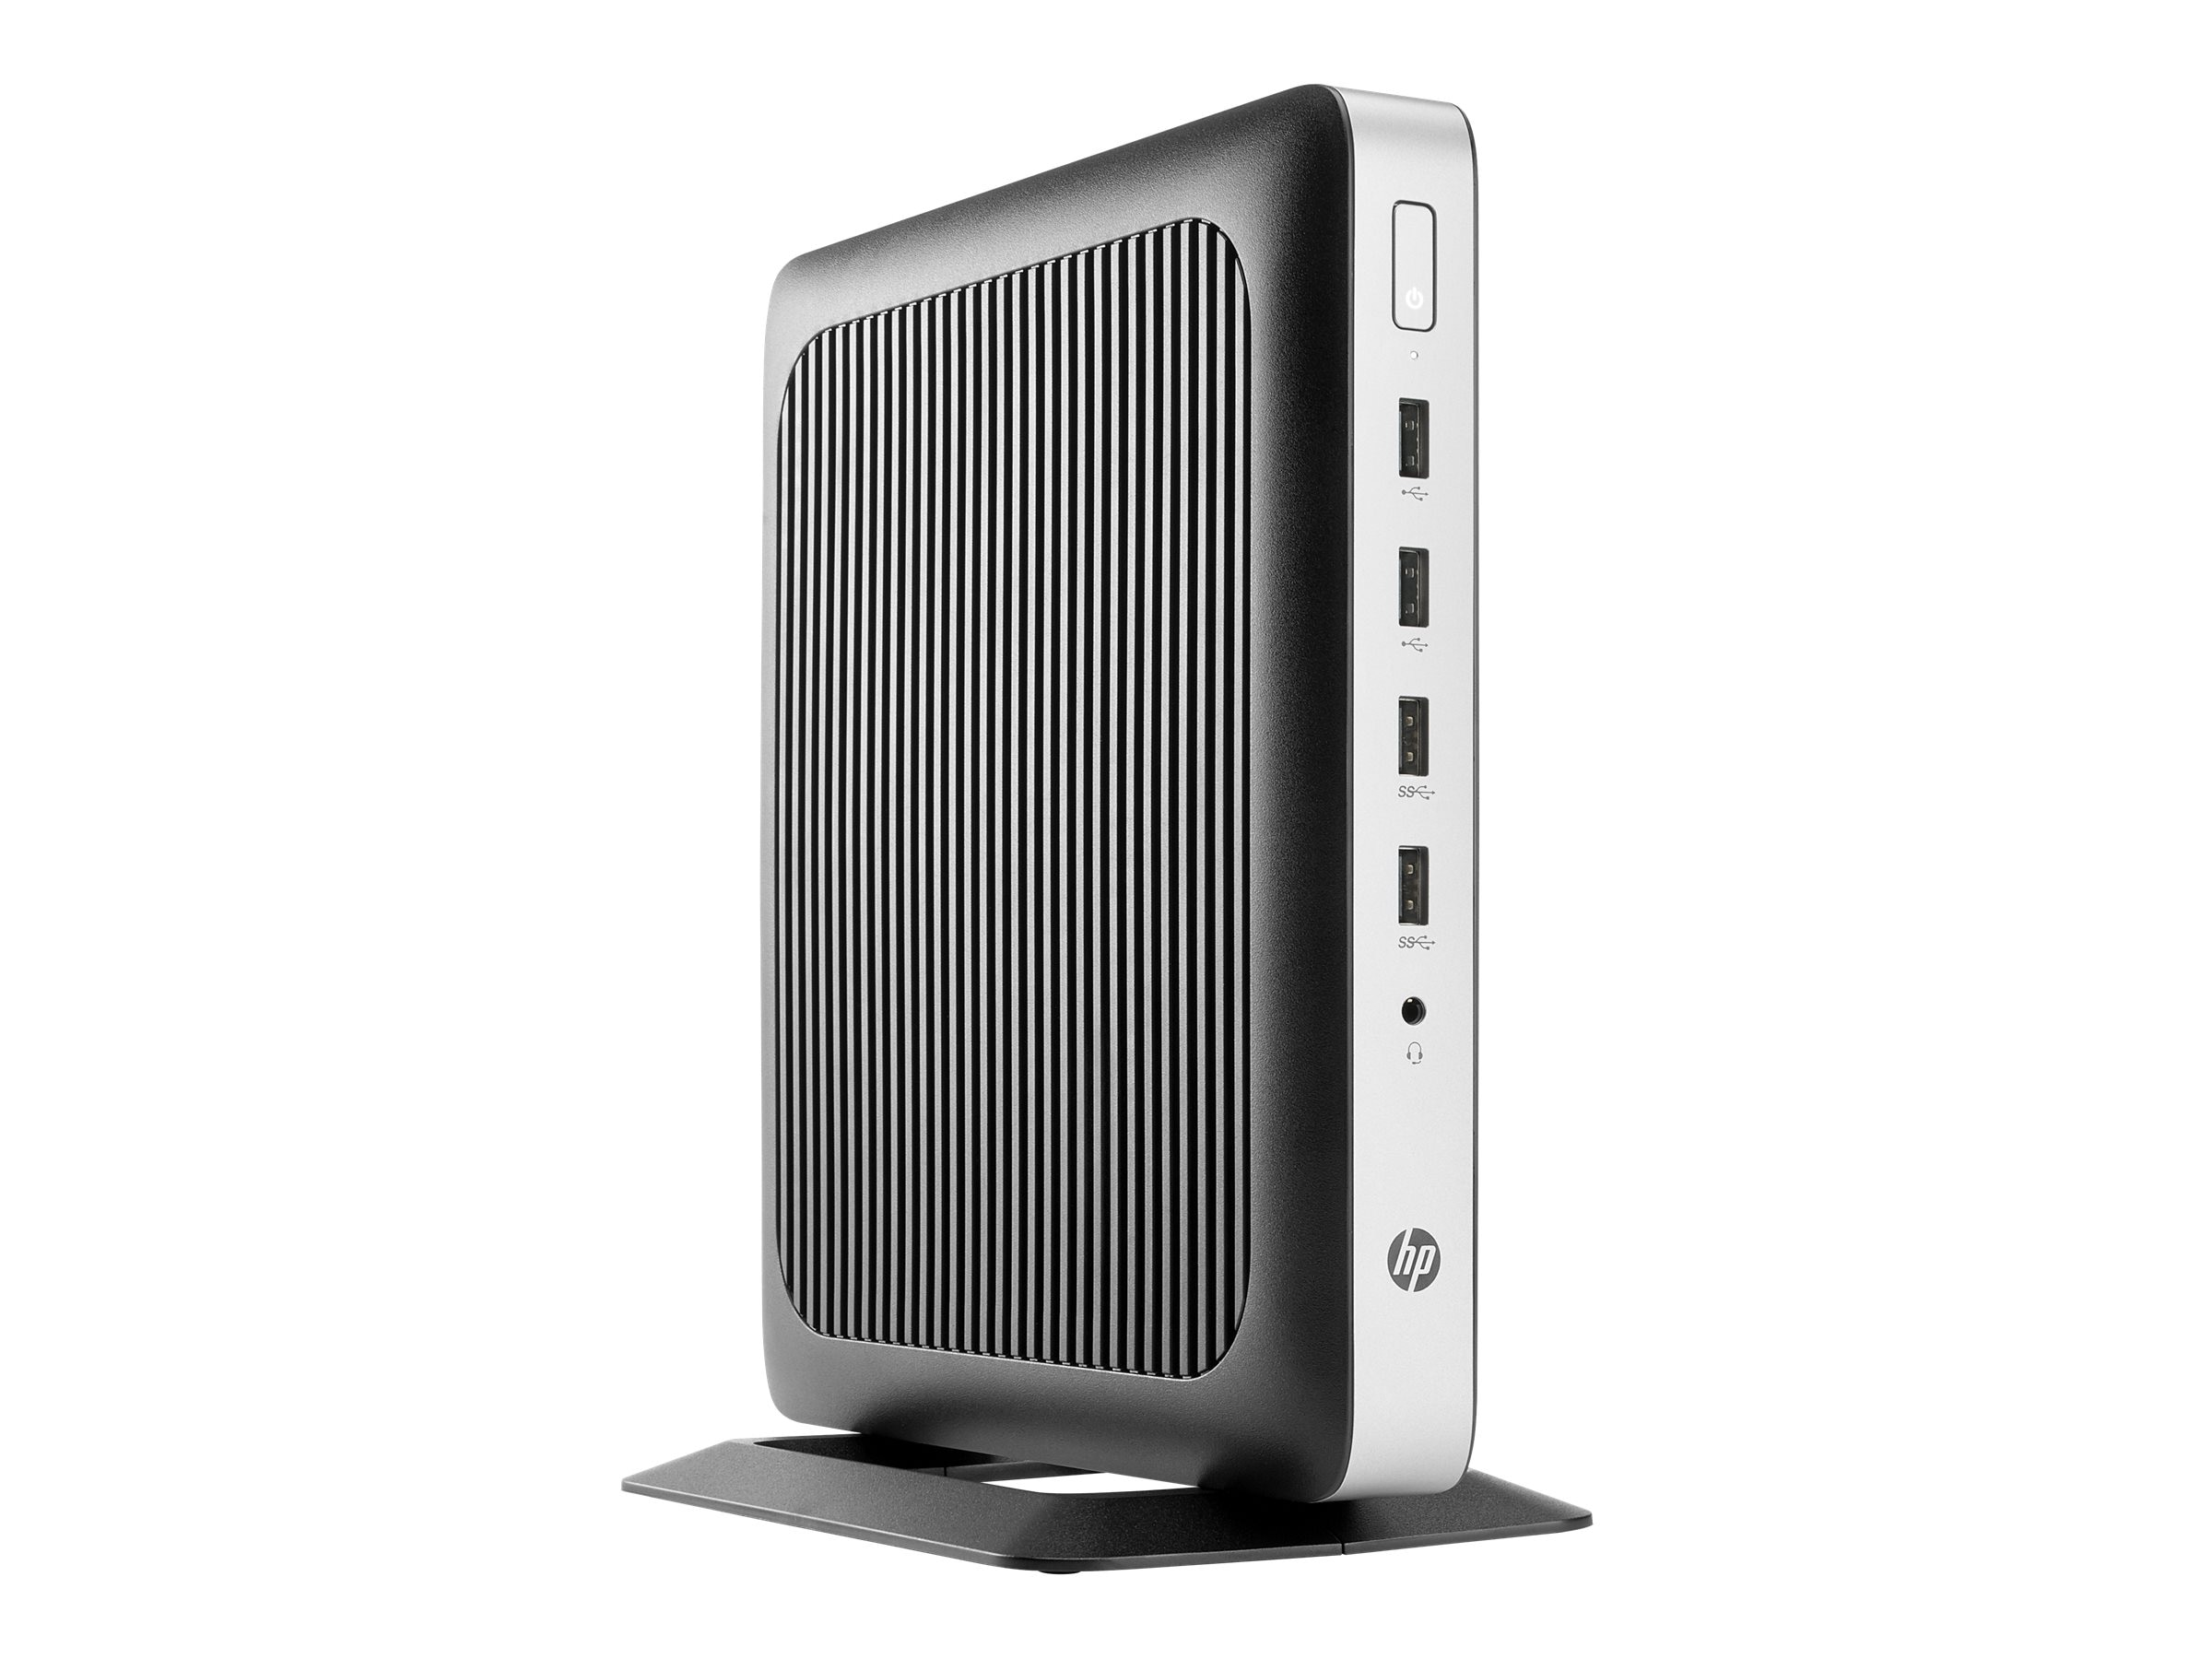 HP t630 Thin Client AMD GX-420GI 2.0GHz 8GB 32GB Flash R6E GbE W10 IoT, X4X21AT#ABA